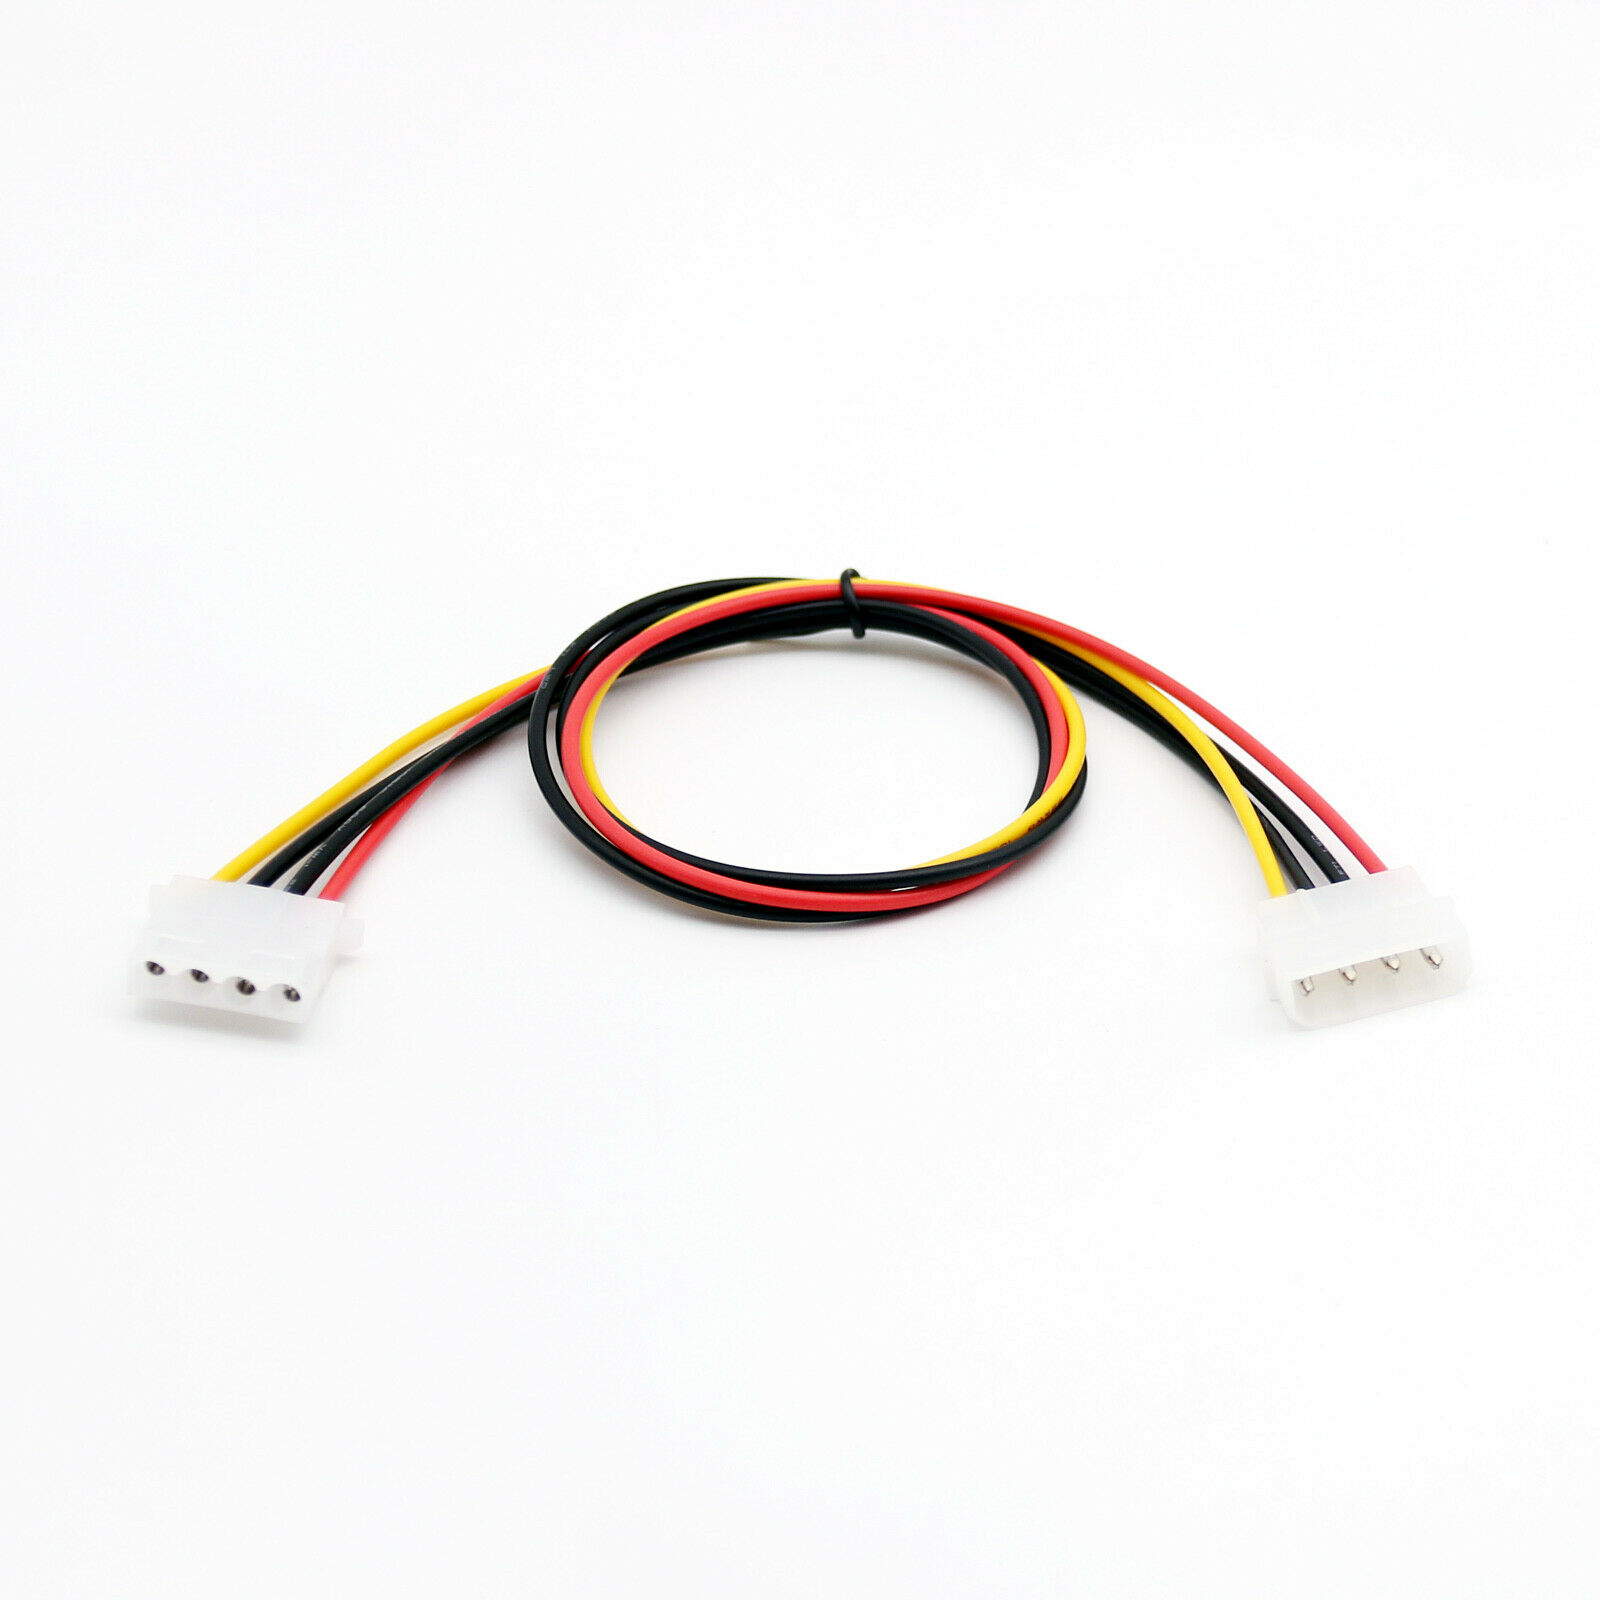 1pc 50cm/1.5ft IDE 4 PIN Molex Power Male To IDE 4 PIN Molex Female Jack Extension Adapter Connector Cable